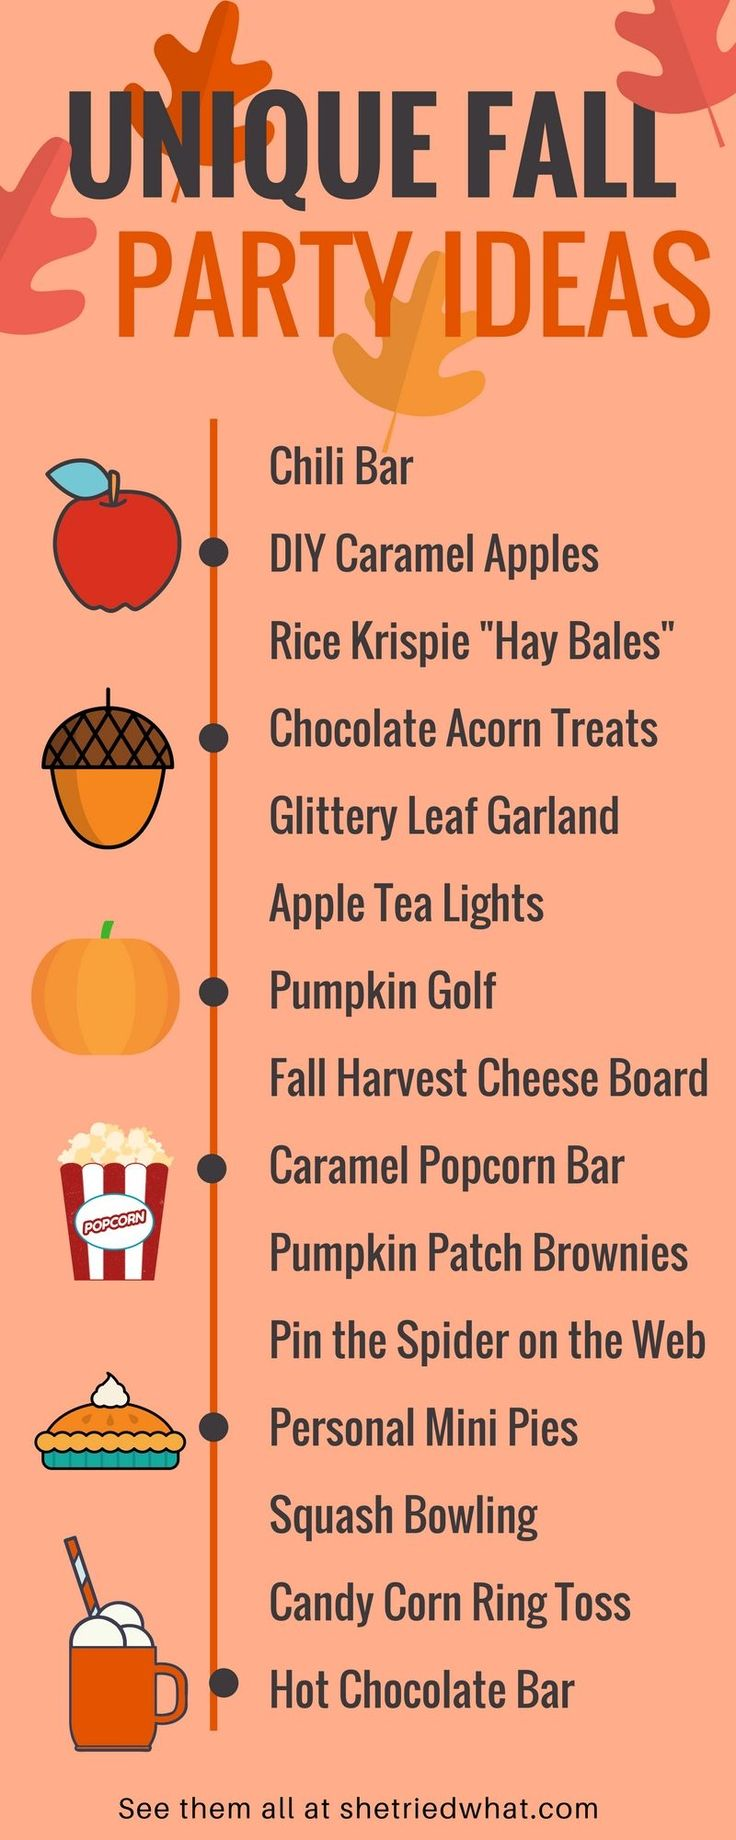 The best list of creative fall party ideas including food ideas, party games, fall decor ideas and more!